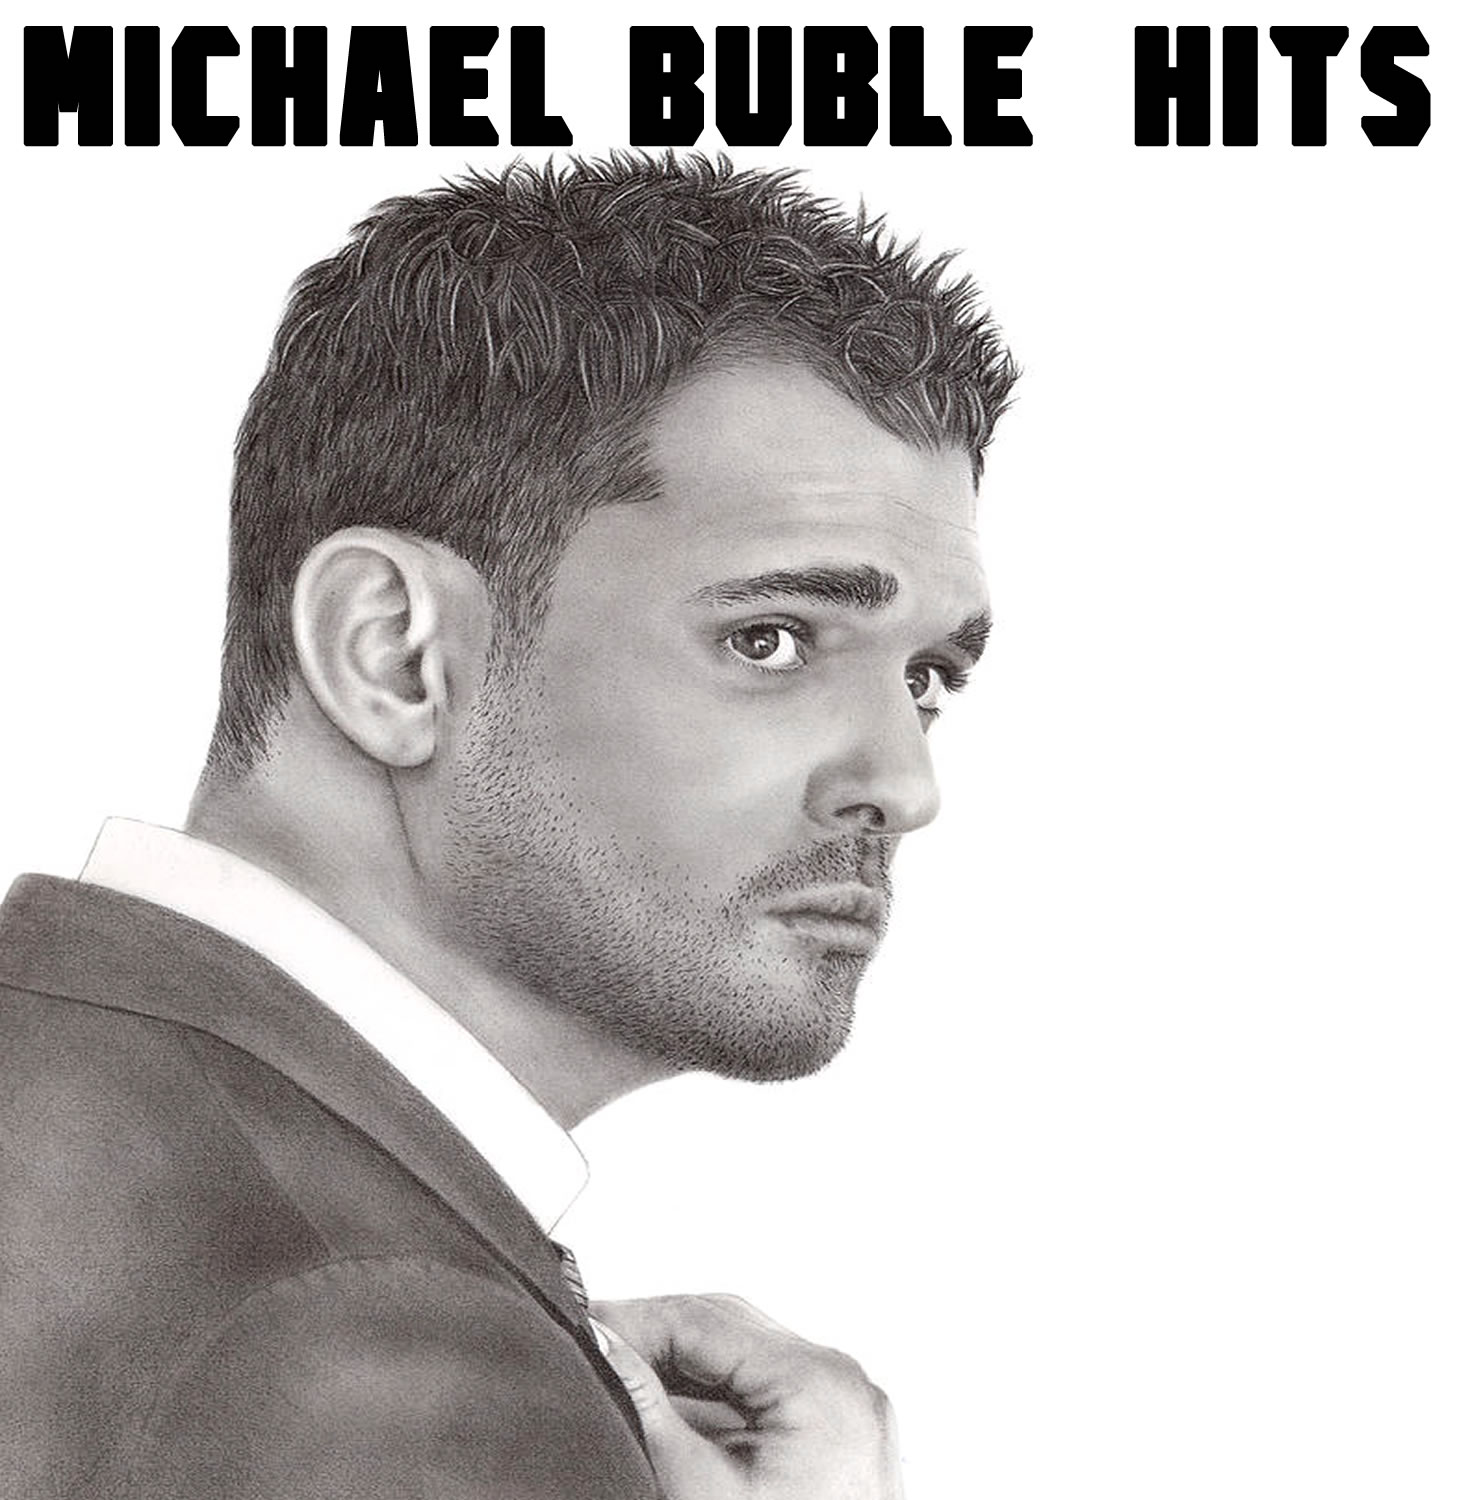 Vocal-Star Michael Buble Hits